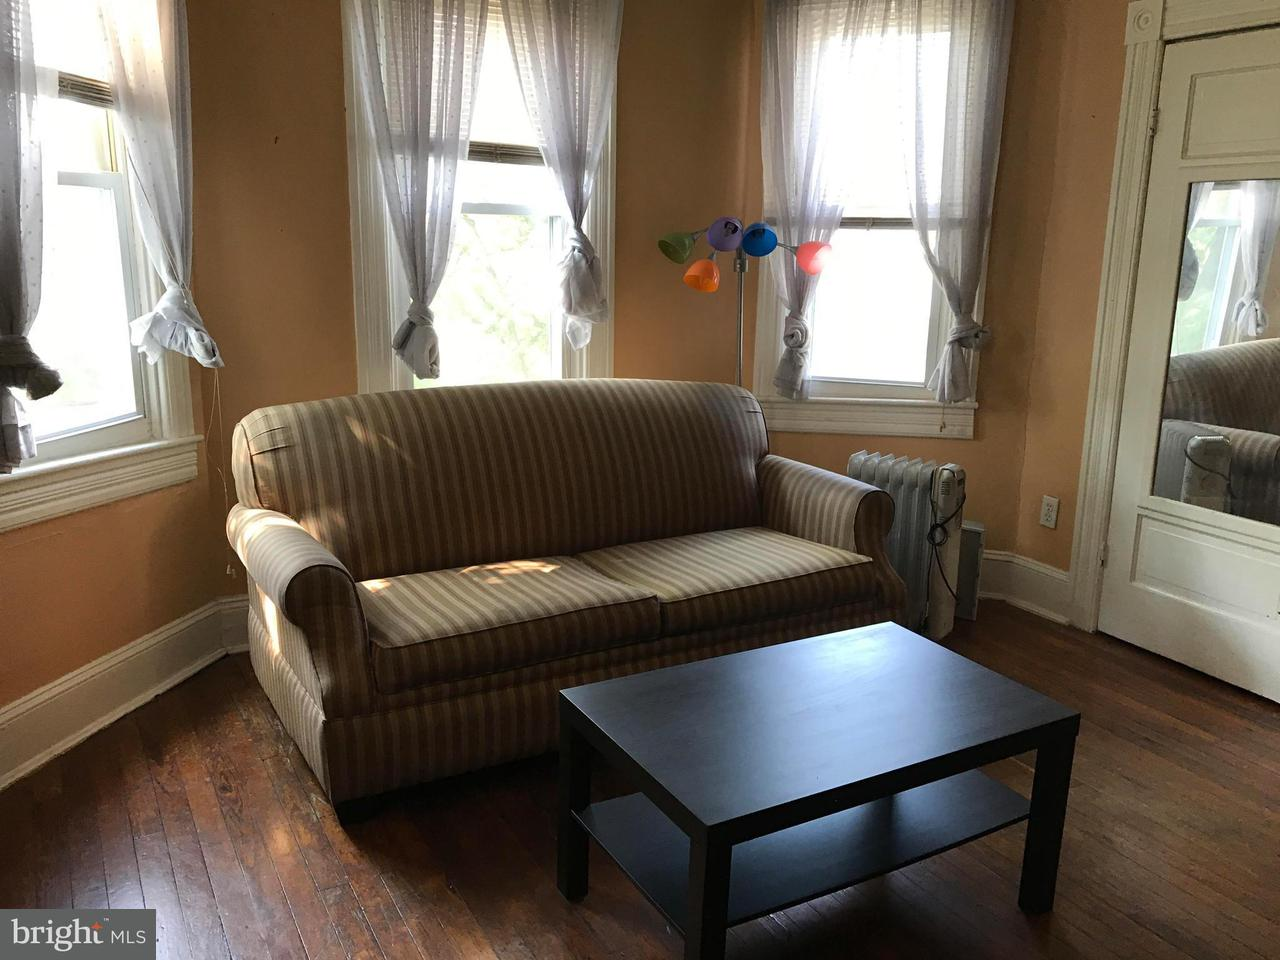 Other Residential for Rent at 2906 Grindon Ave #2 Baltimore, Maryland 21214 United States